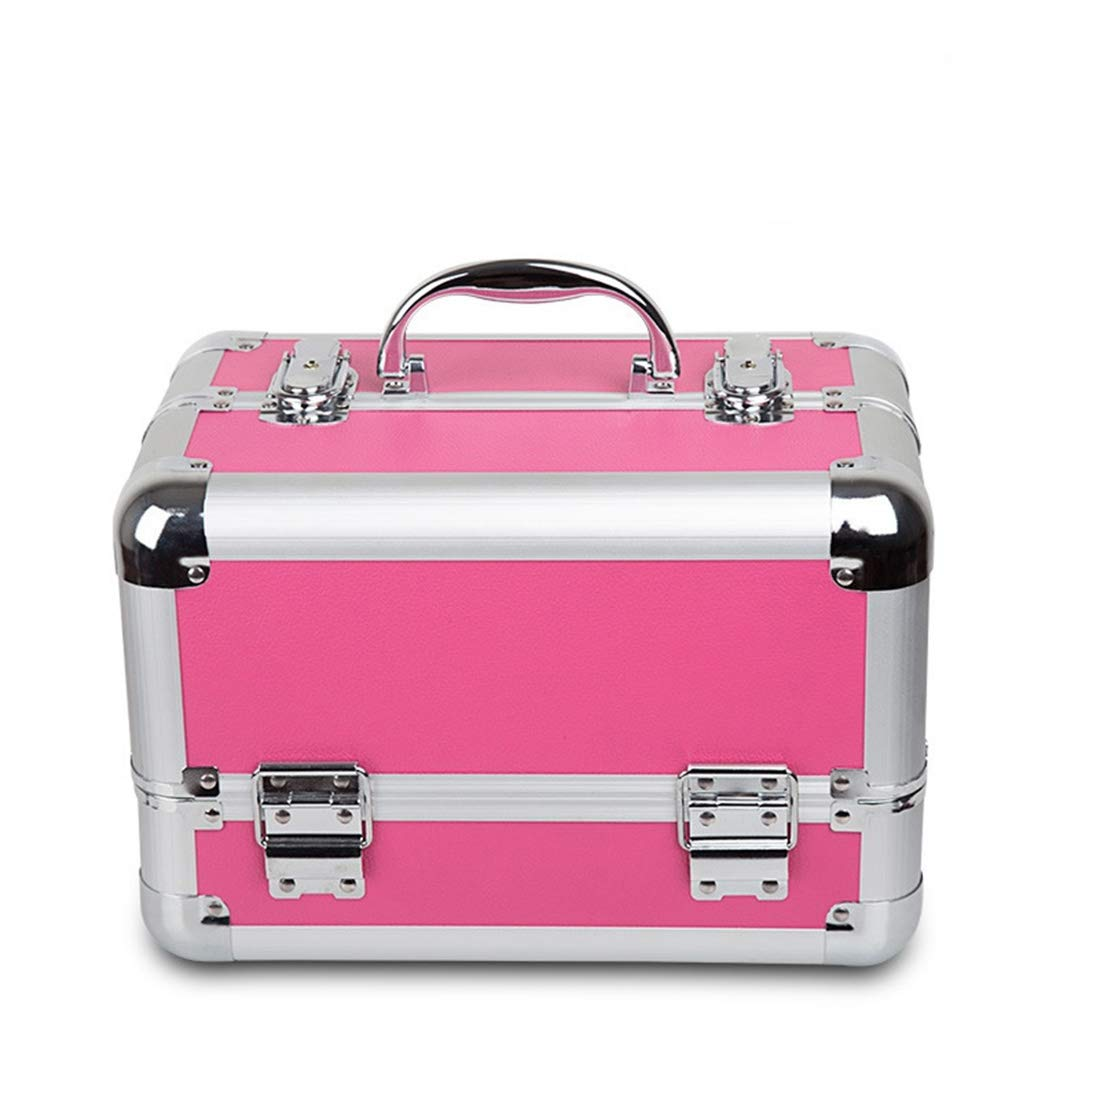 KERVINJESSIE Extra Large Space Storage Beauty Box Make up Nail Jewelry Cosmetic Dresser Vanity Case Pink (Color : Pink)